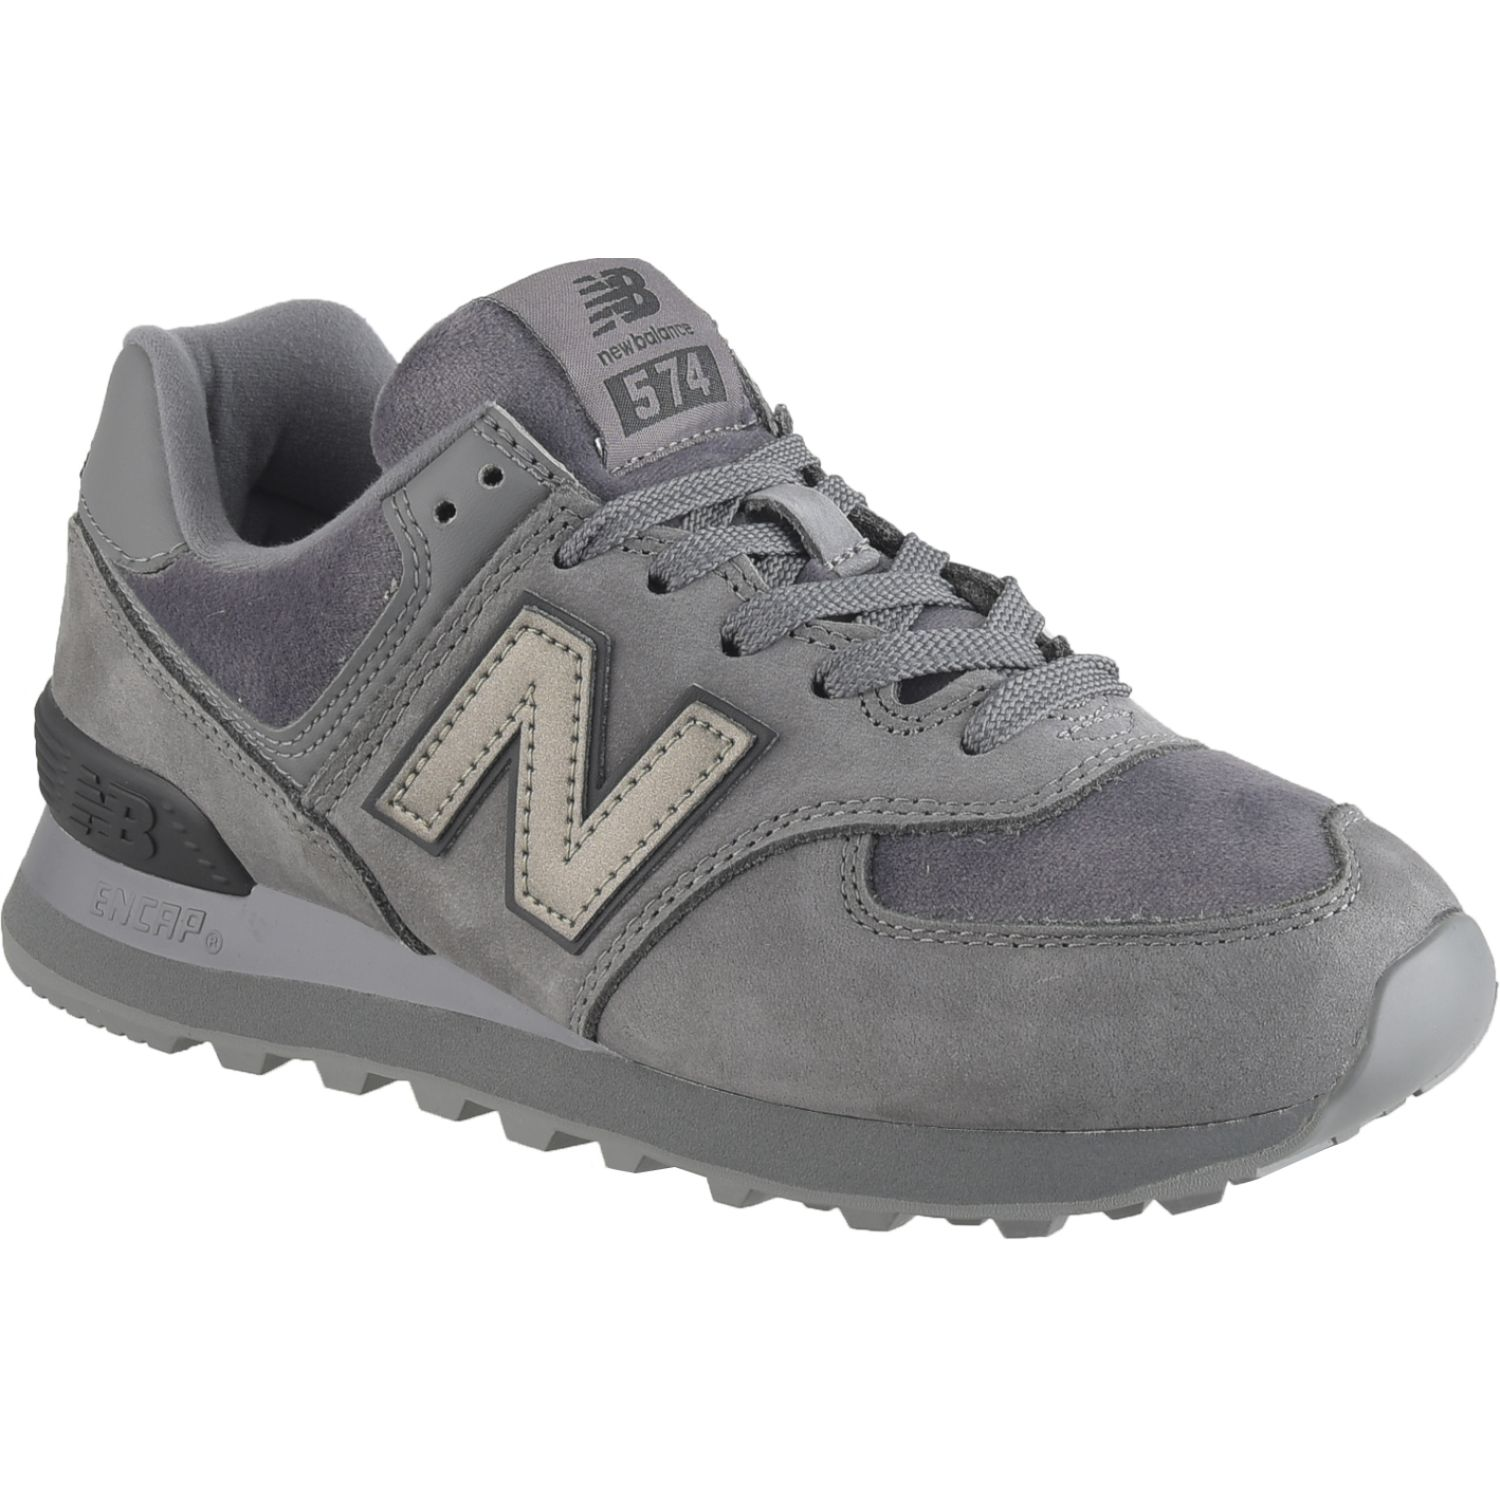 New Balance 574 Gris Walking